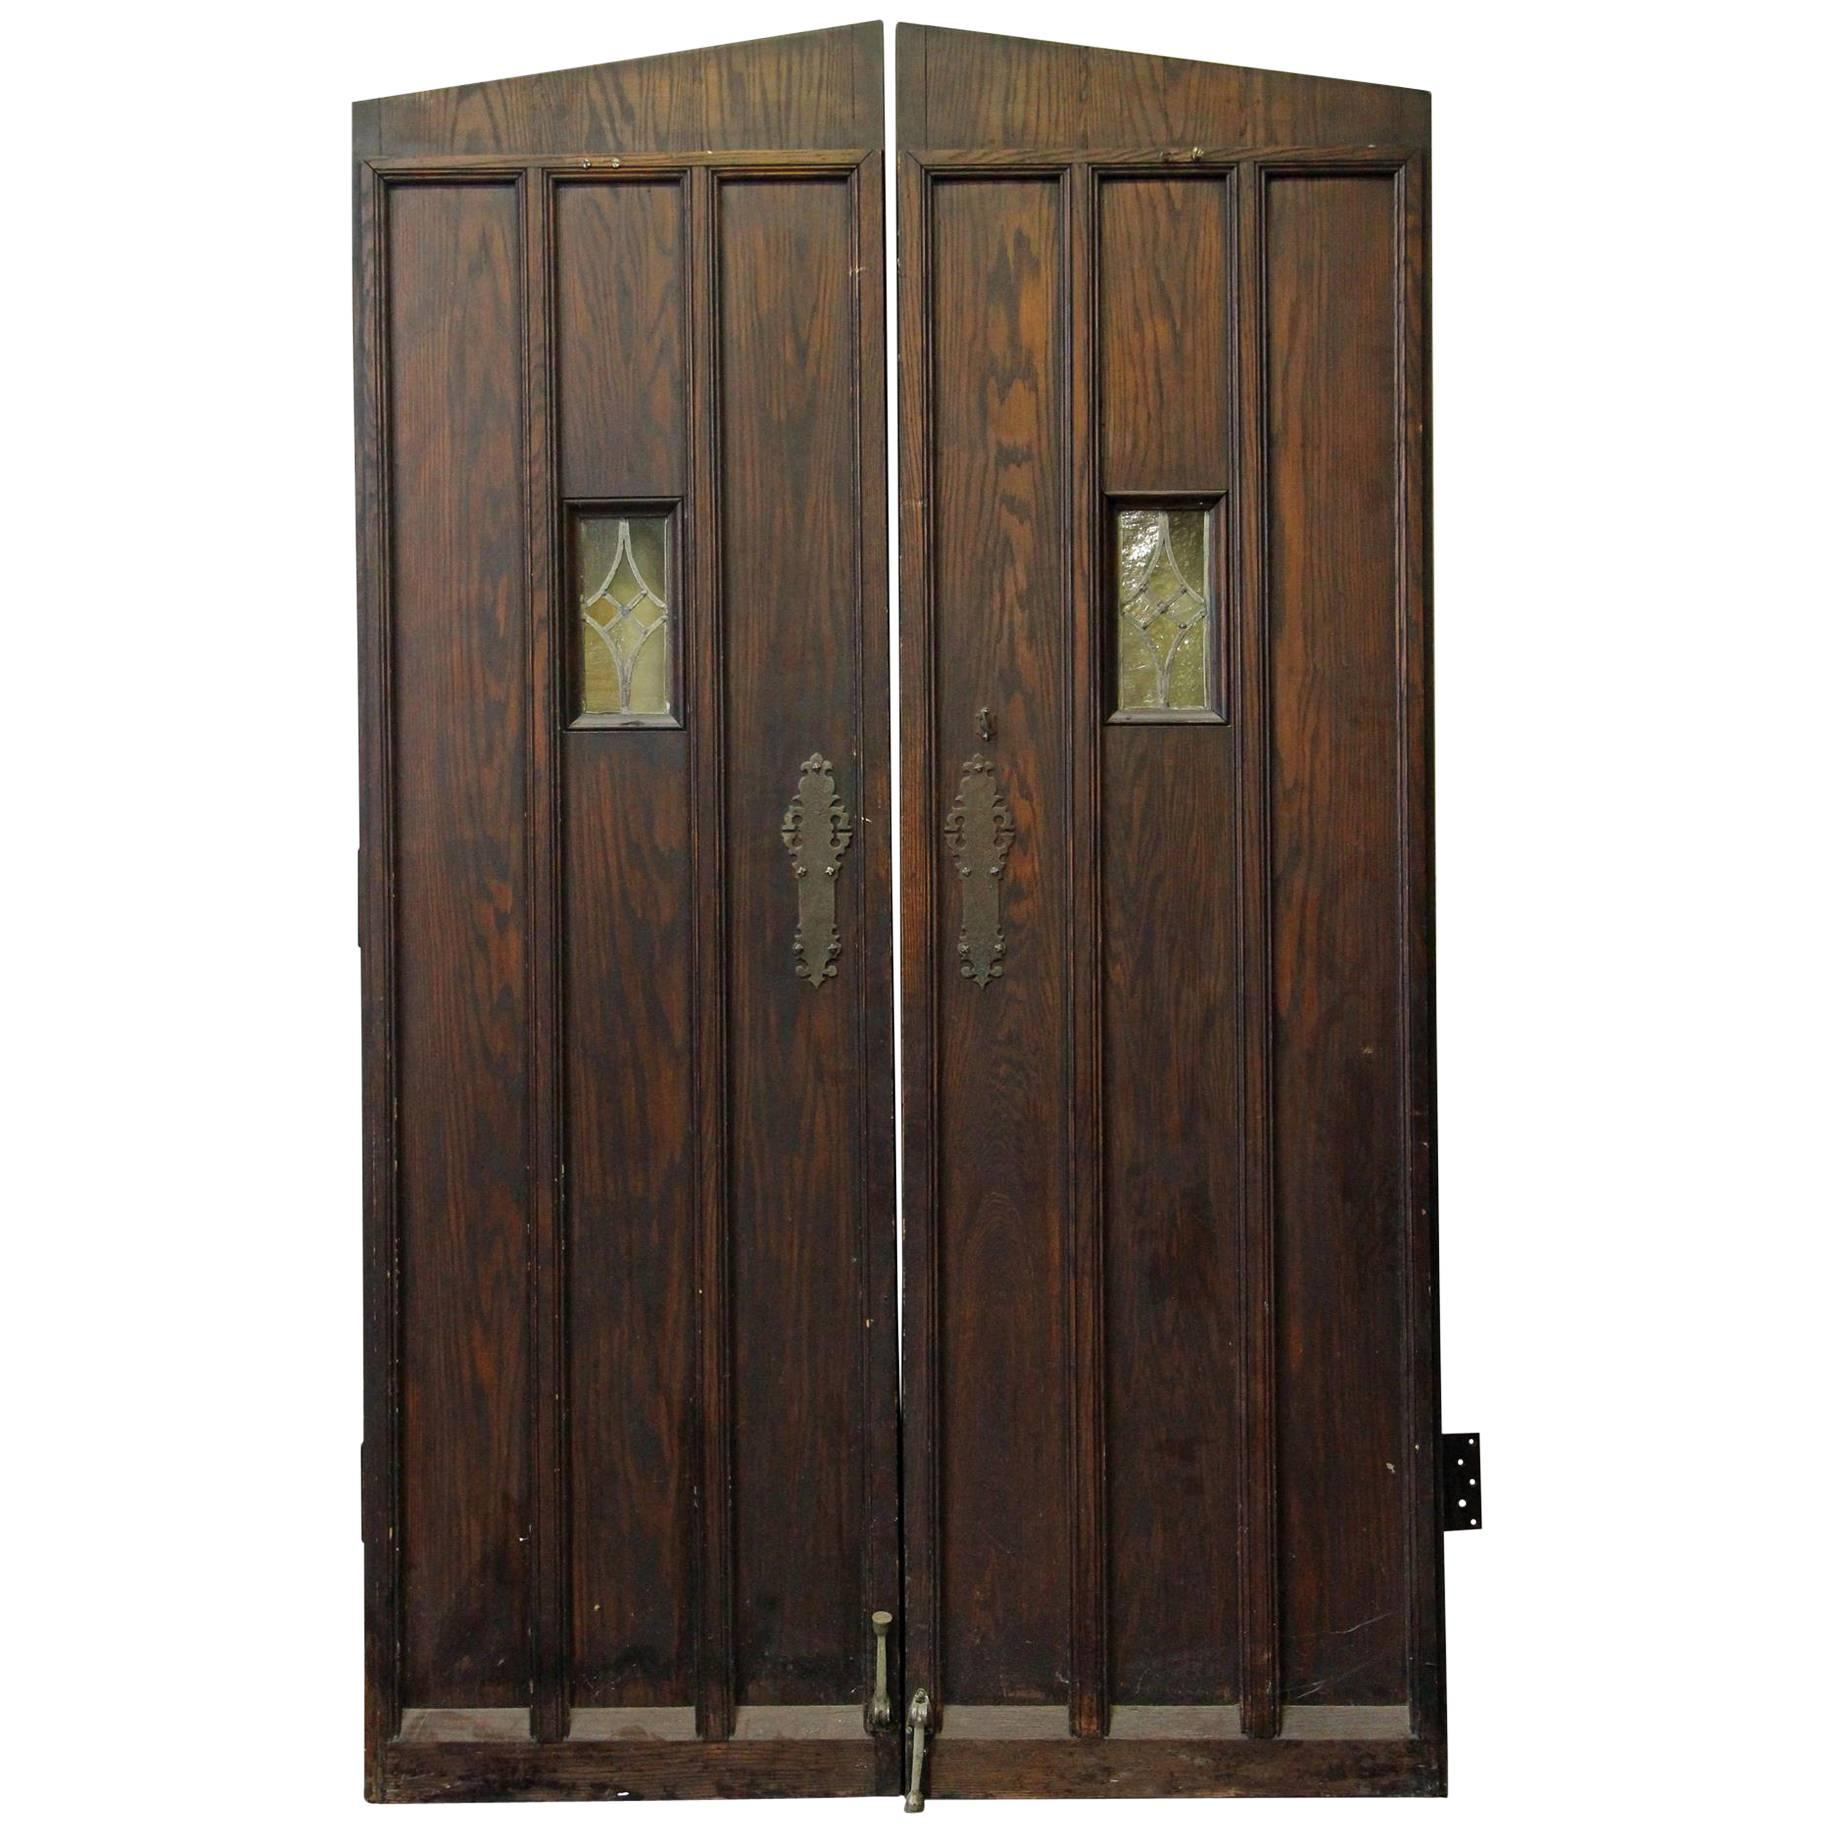 1920s Oak Wine Cellar Double Entry Doors with Gothic Arch  sc 1 st  1stDibs & 18th Century English Gothic Oak Plank Door For Sale at 1stdibs